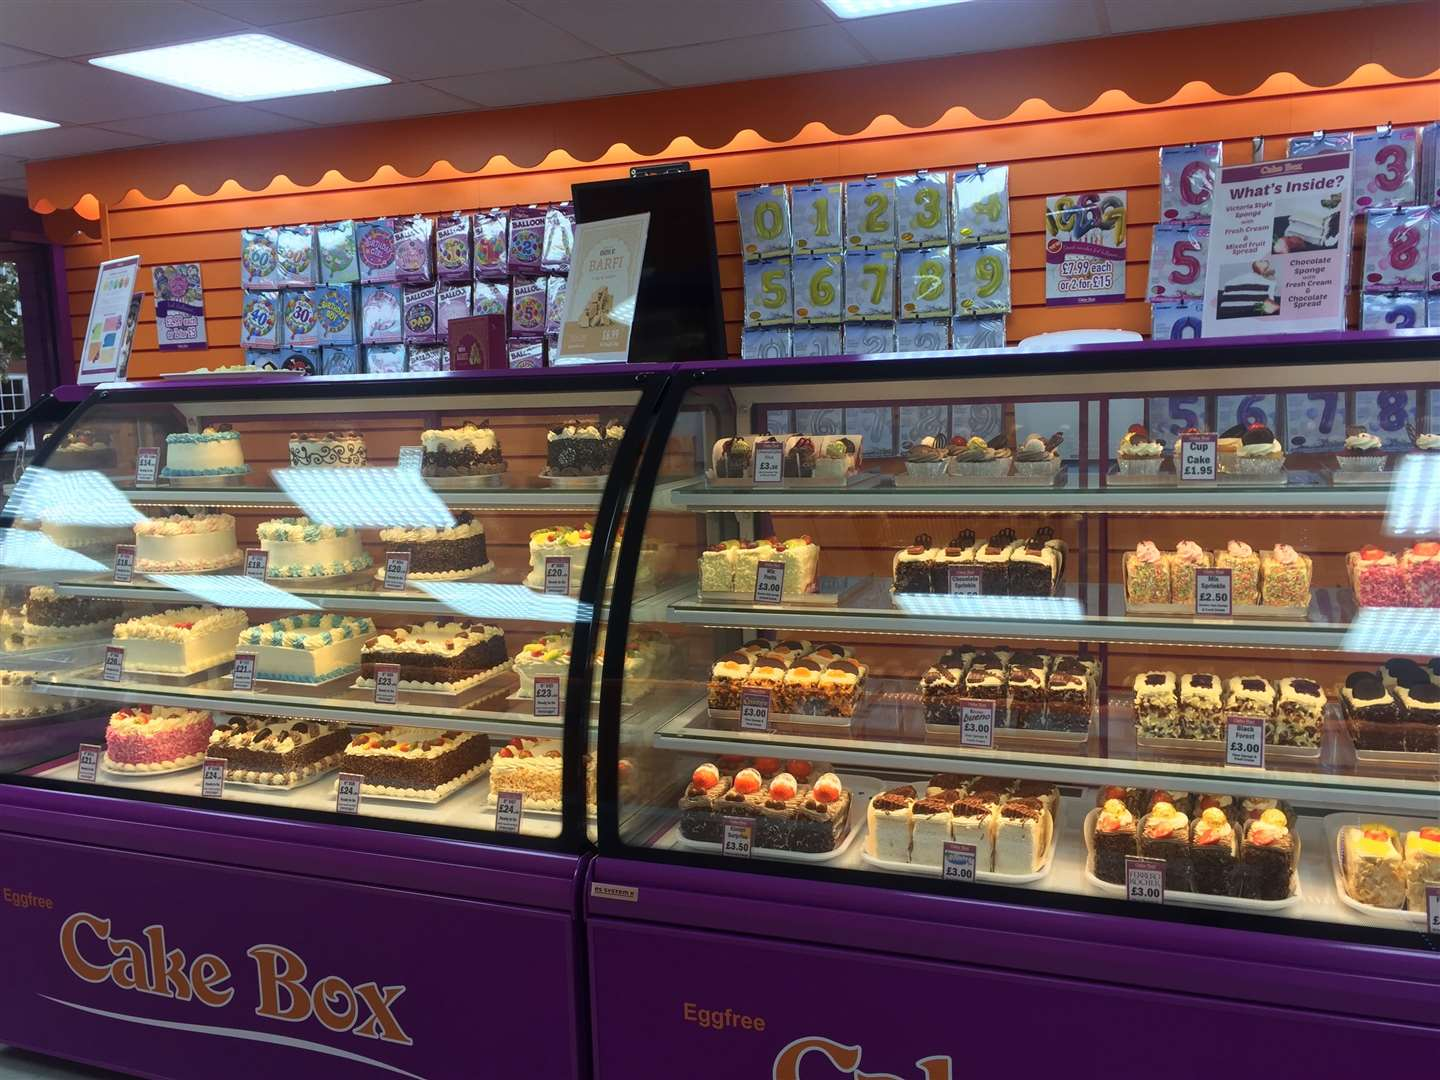 A selection of egg-free cakes are on offer (20945626)